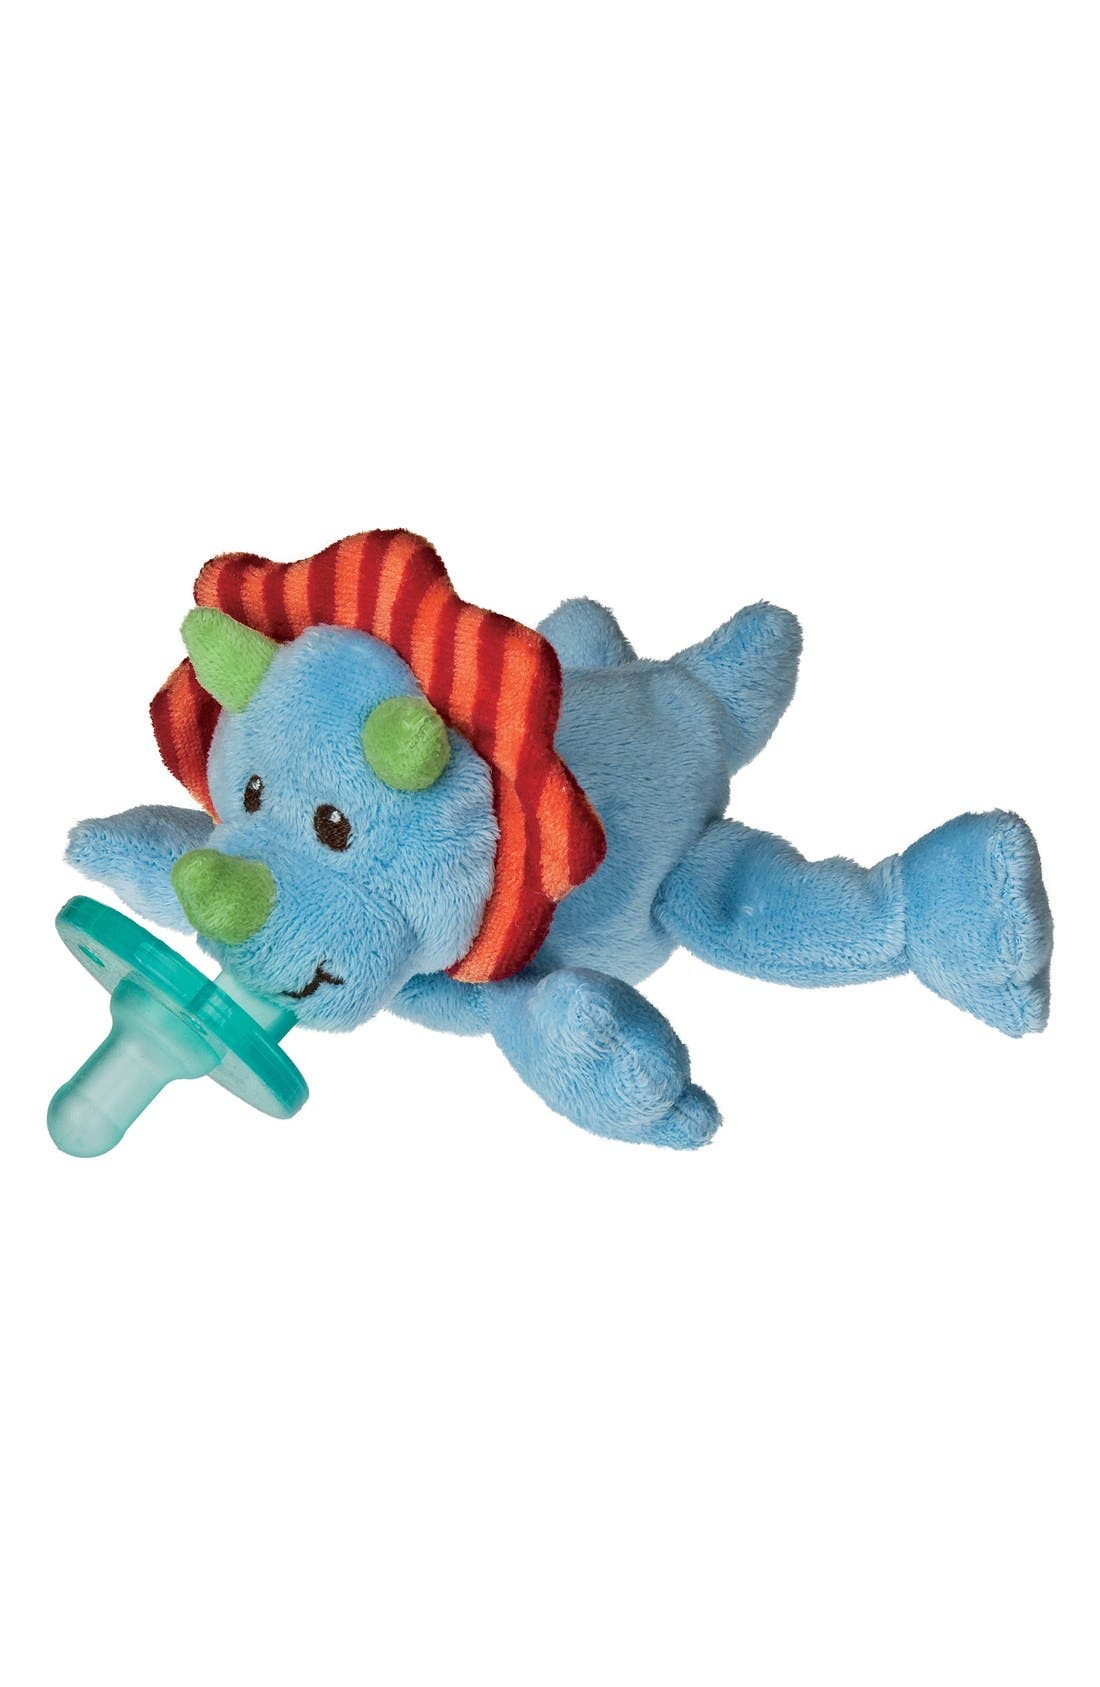 Main Image - Mary Meyer 'Okey Dokey Dino' WubbaNub™ Pacifier Toy